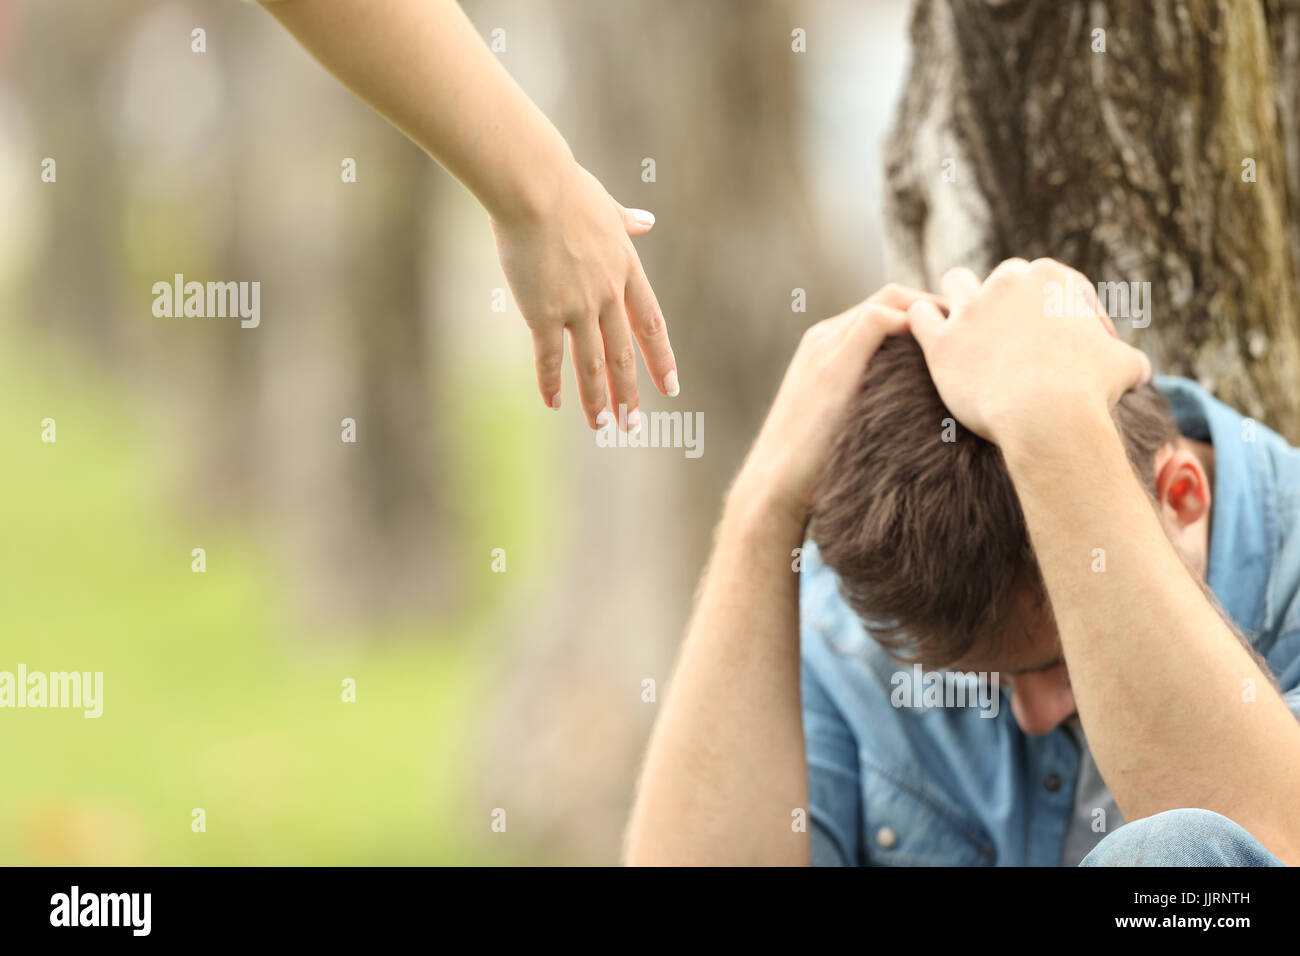 Sad teen sitting on the grass in a park and a woman hand offering help with a green background - Stock Image